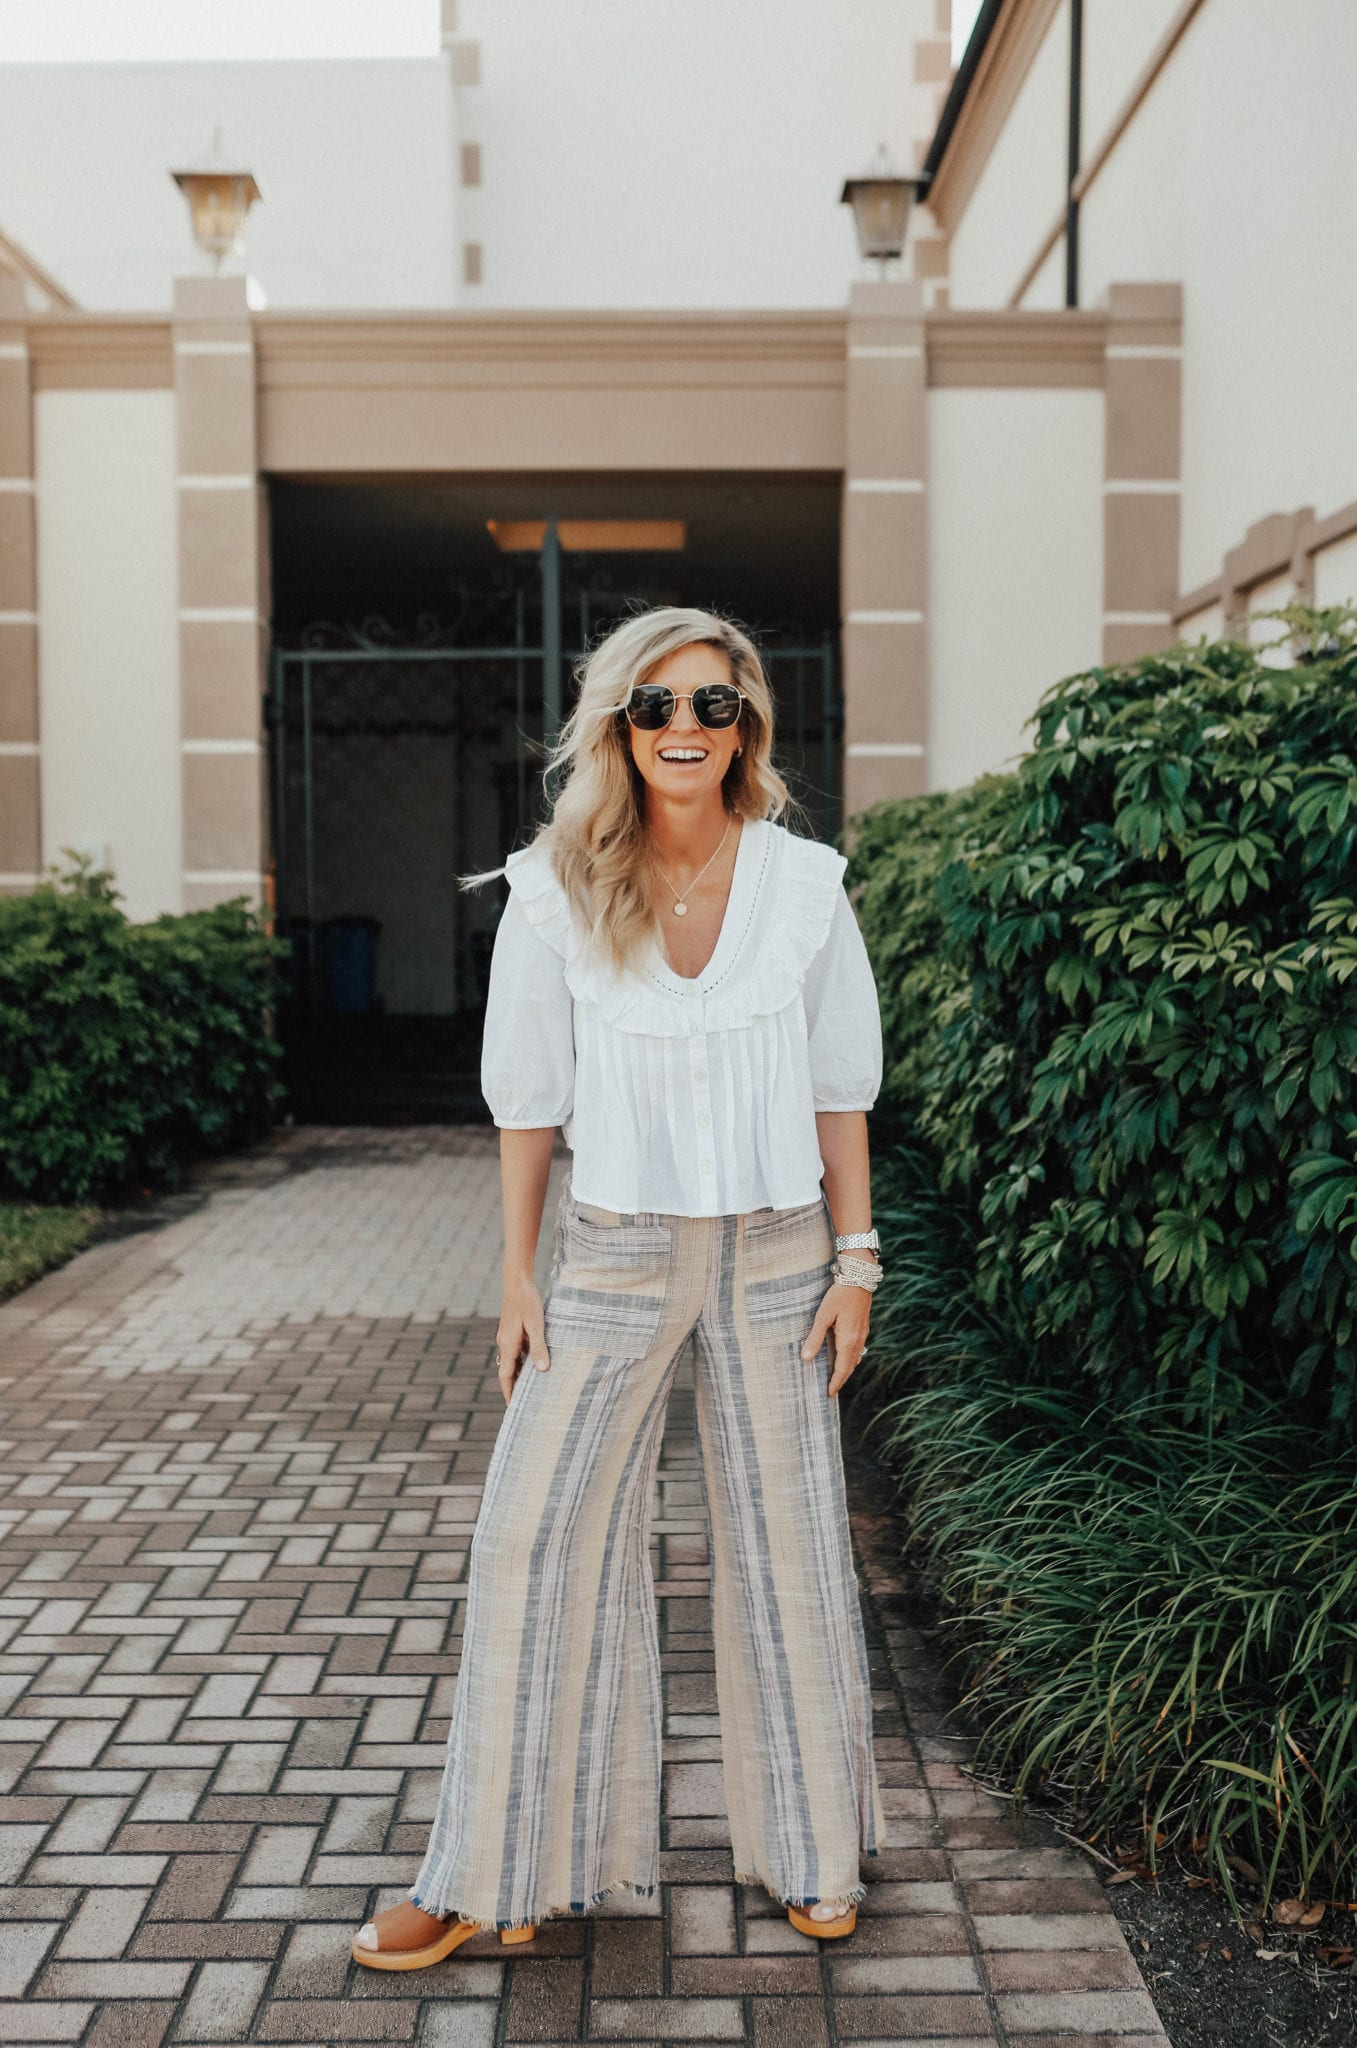 White top paired with palazzo pants